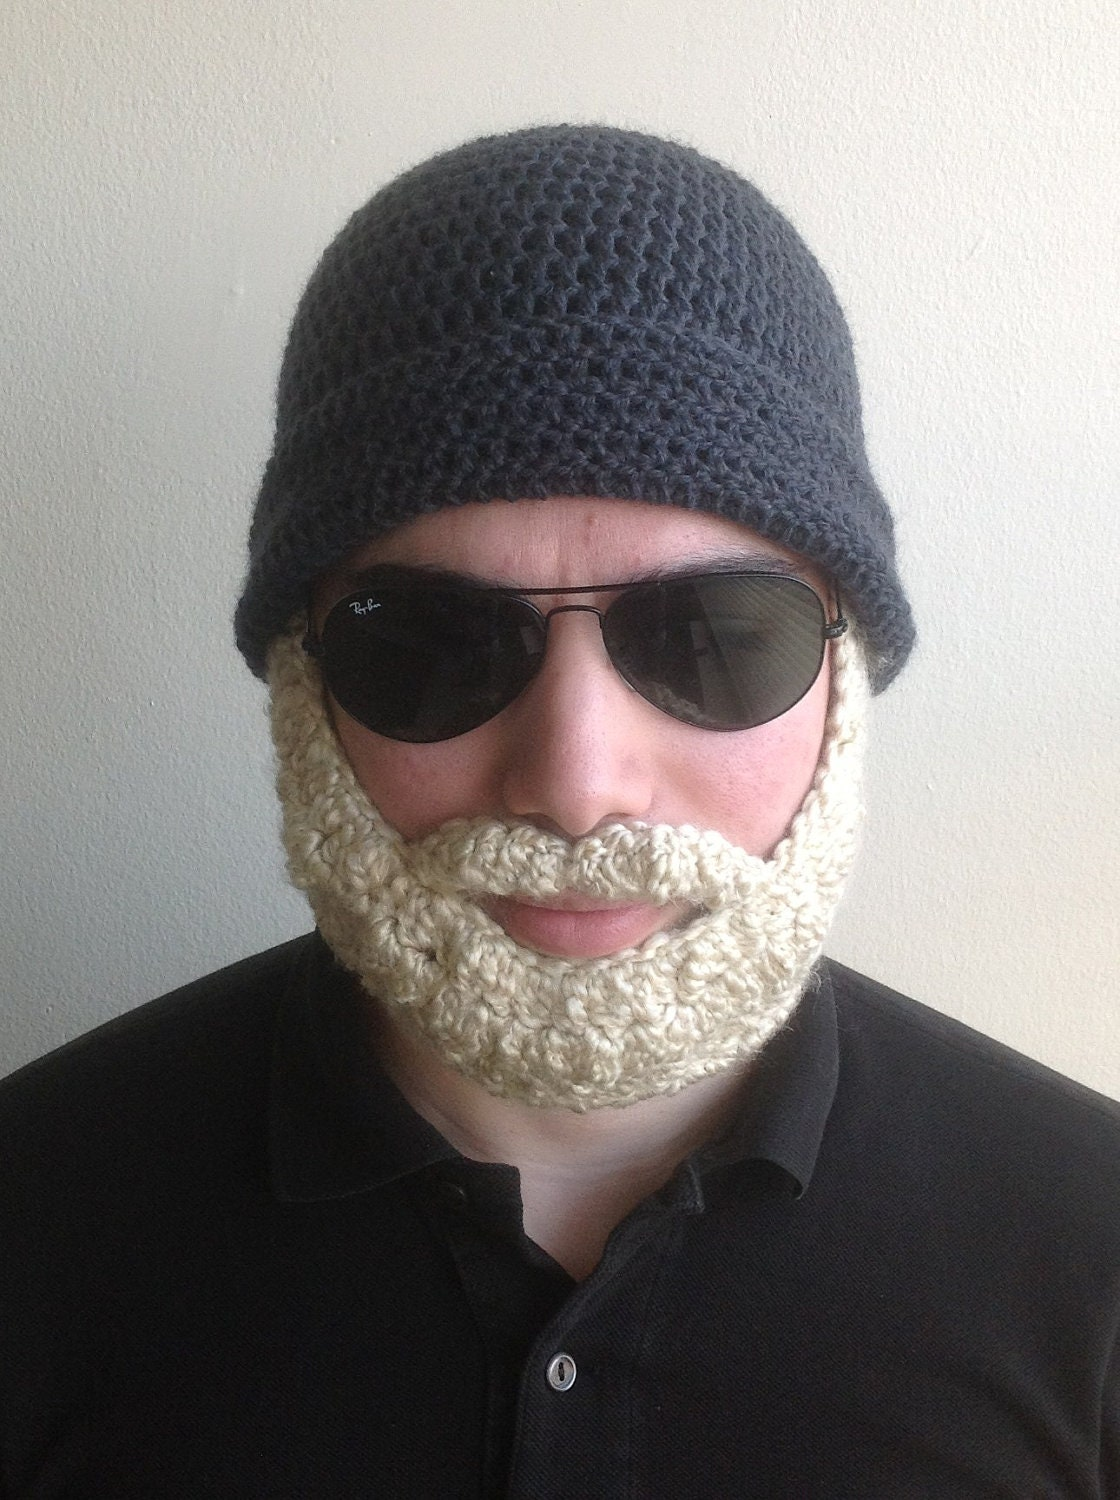 Handmade Crochet Beard Hat In Dark Grey Beanie Hat With Blonde